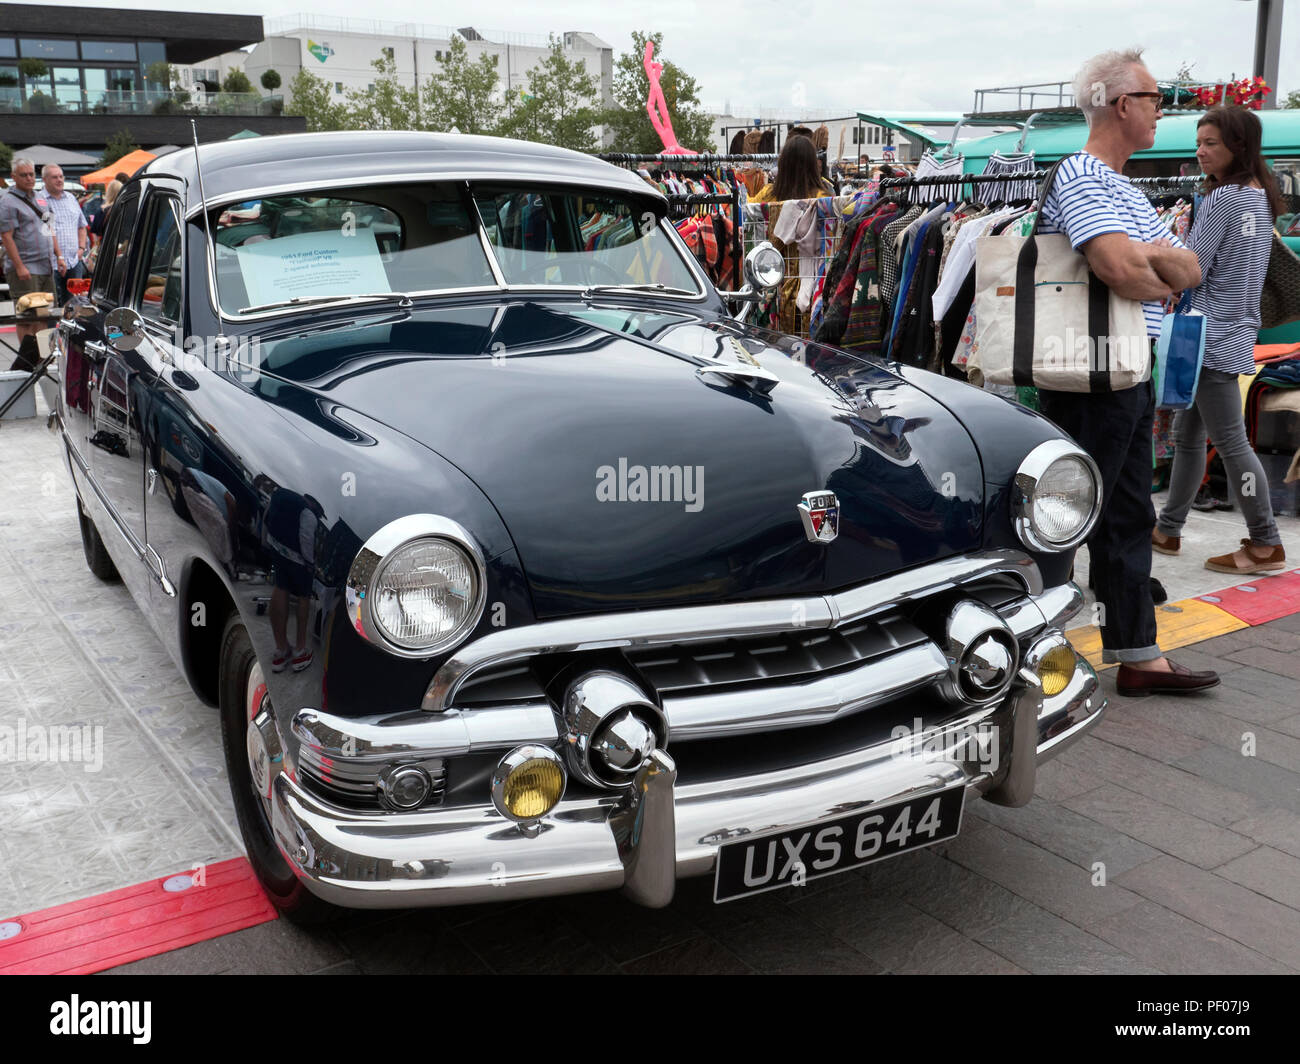 london, uk. 18th august 2018. market stall and classic cars at